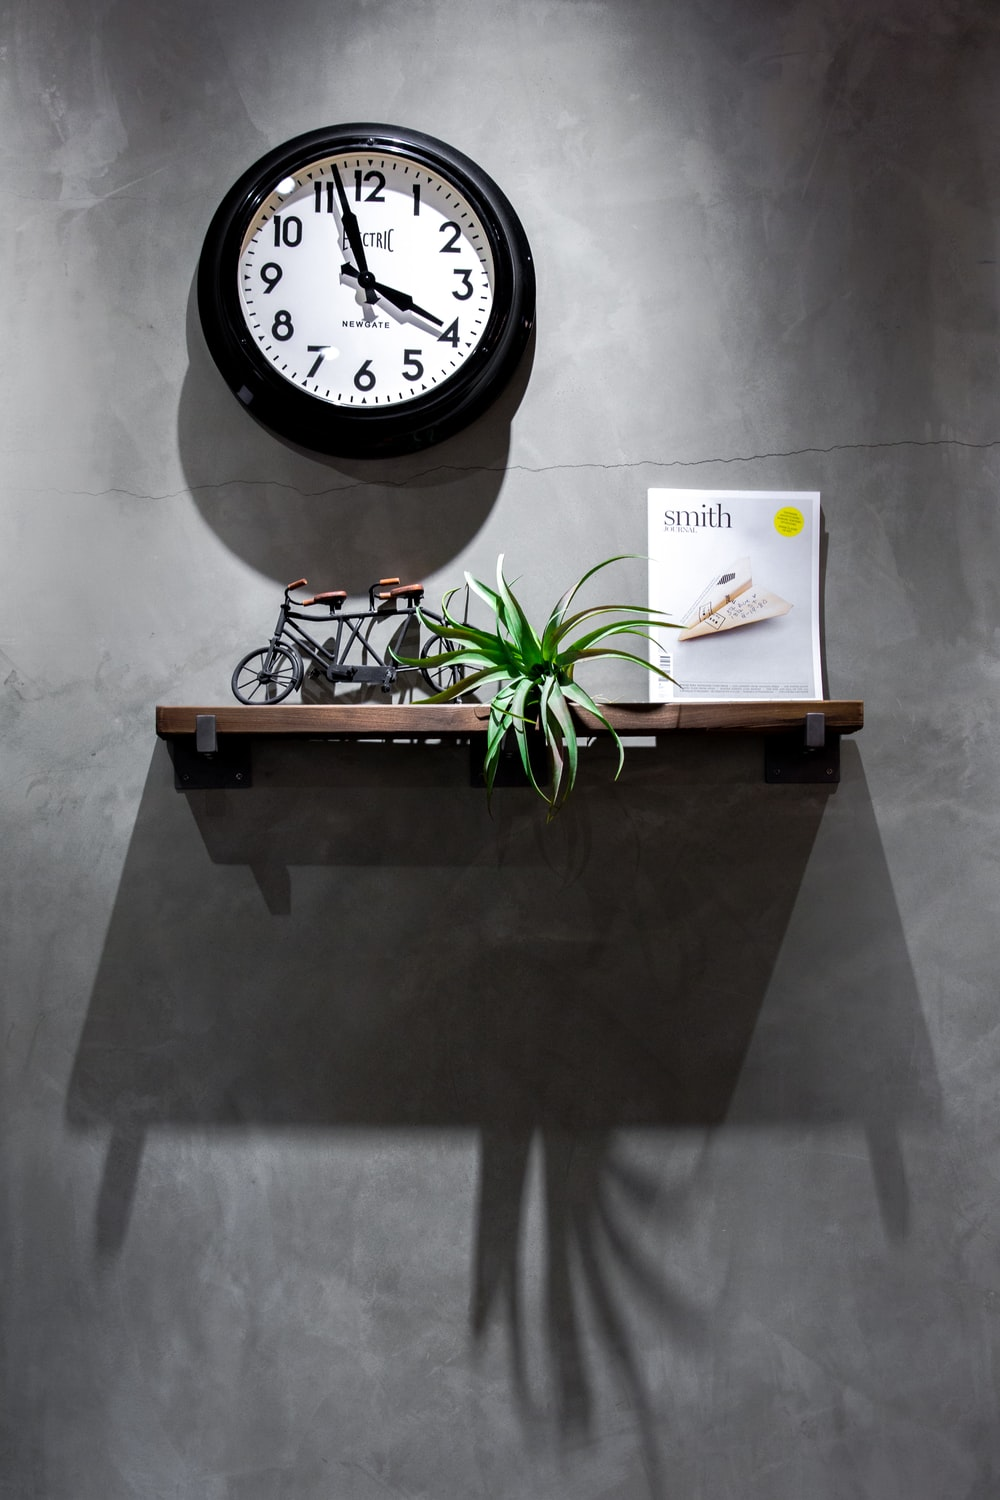 black and white analog wall clock displaying 3:58